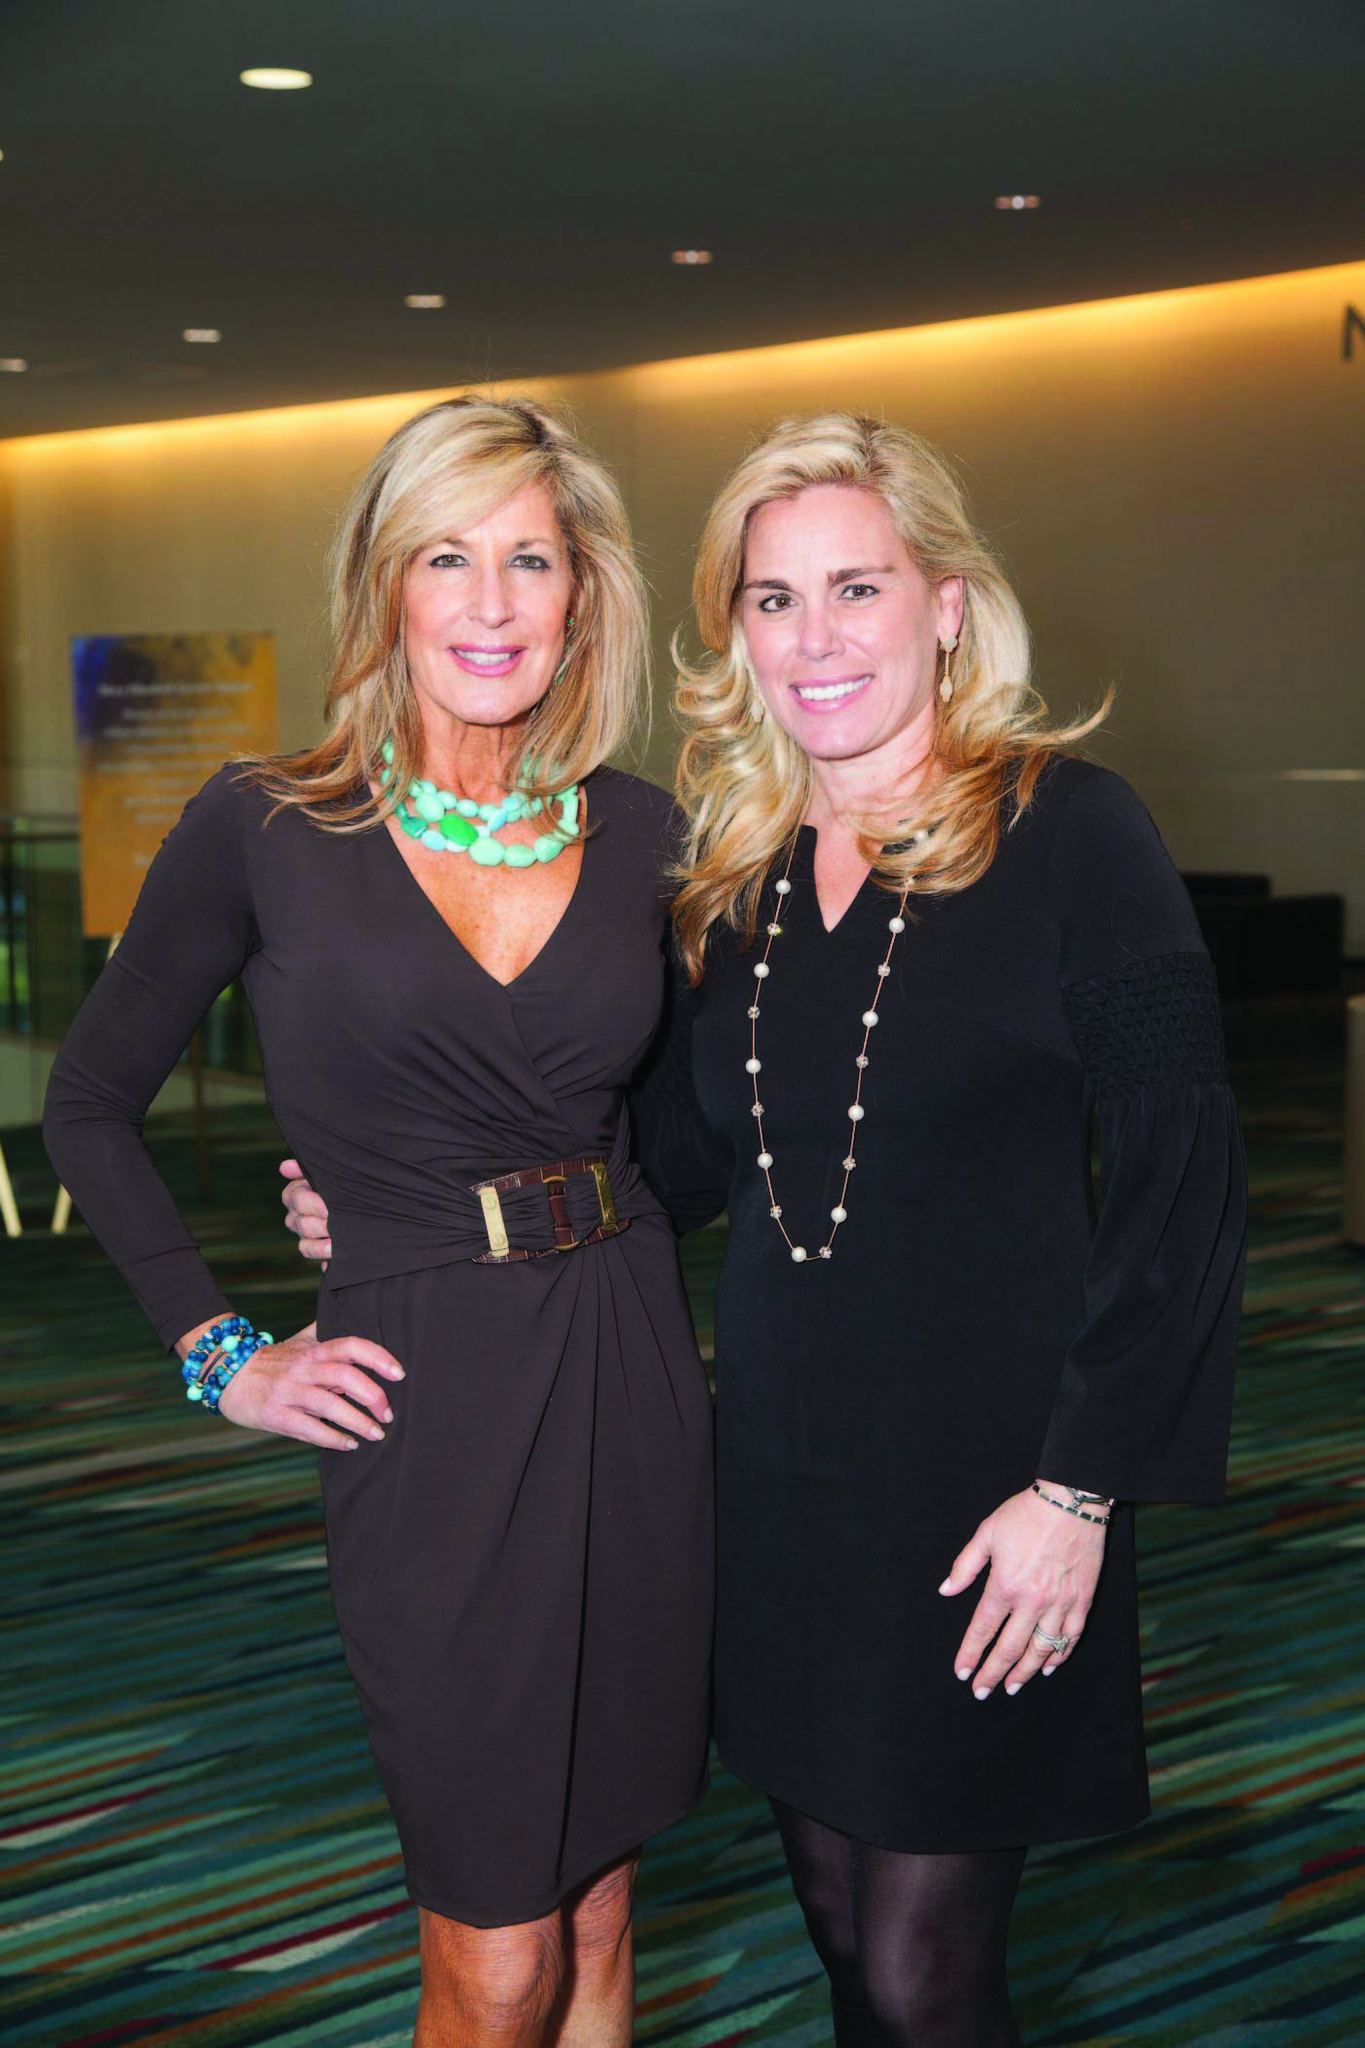 Society Scene photos - Beth Pine, left, and Trisha Keitel were among the more than 300 guests to attend Johns Hopkins Medicine